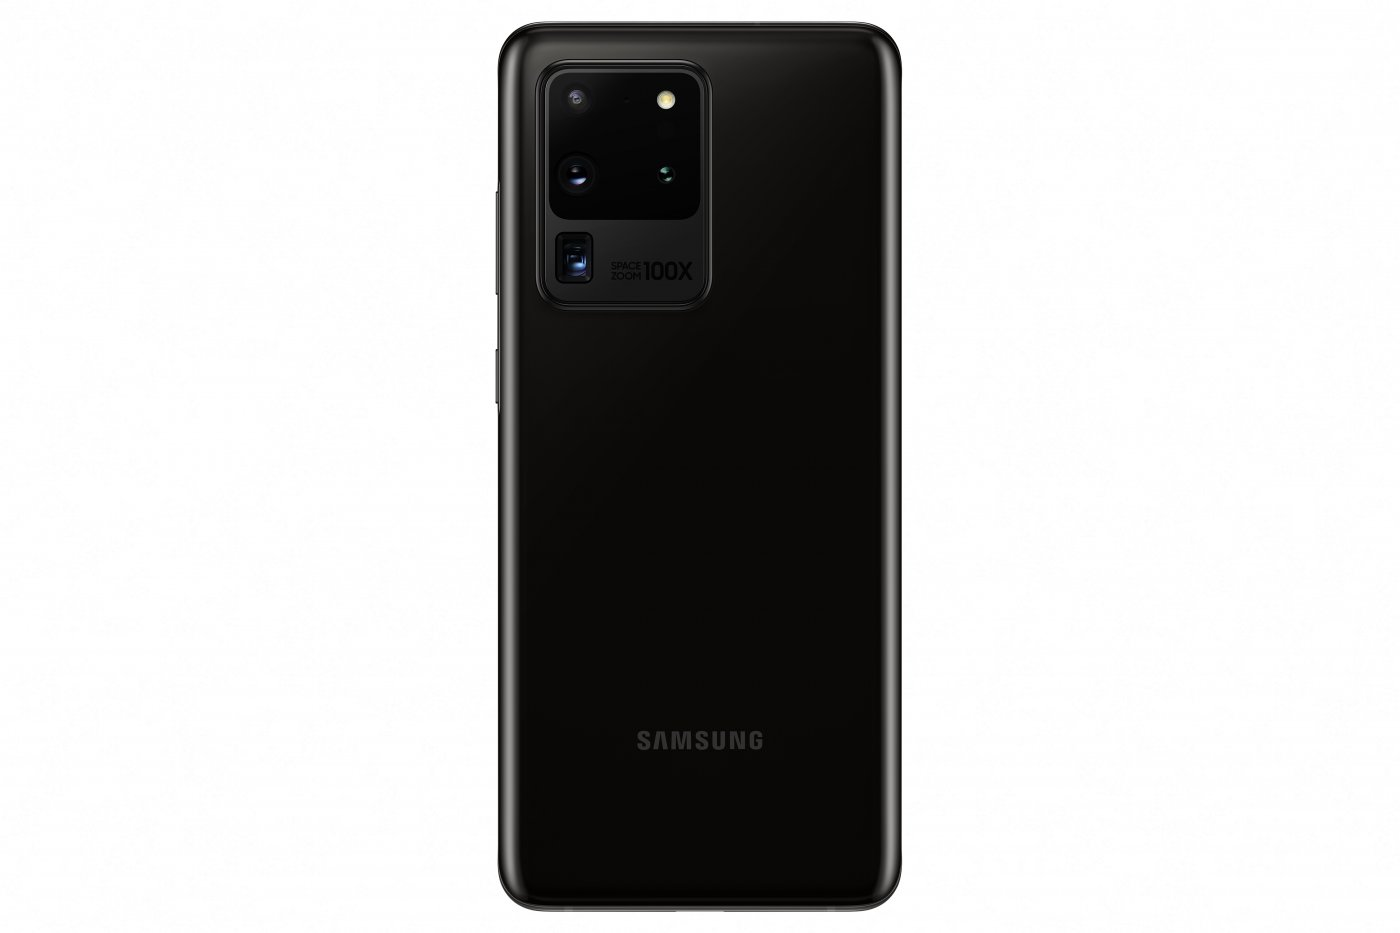 Samsung Galaxy S20 Ultras Are Getting Major Telephoto Upgrades 5